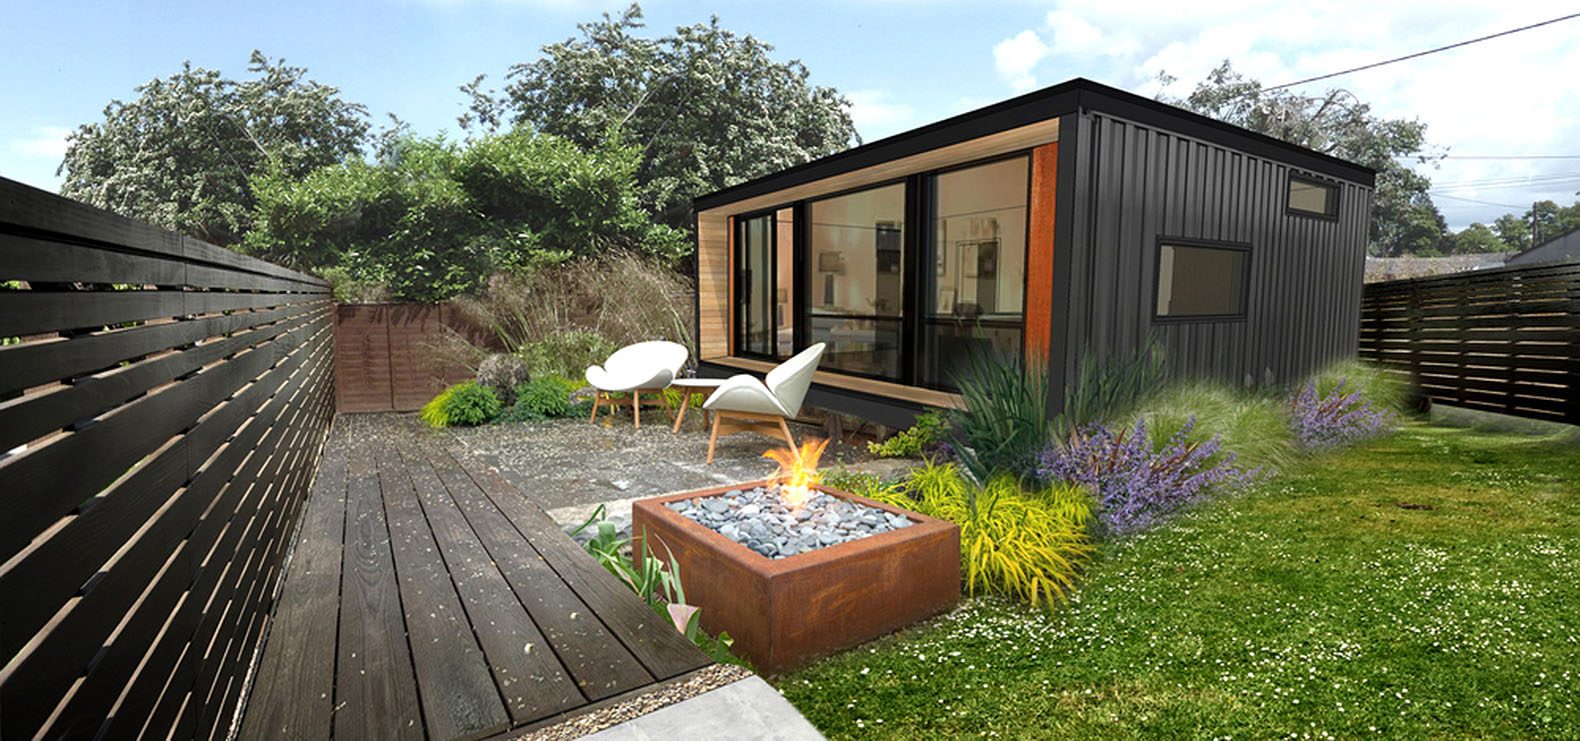 Sustainable Prefab Homes: What Green Living is About